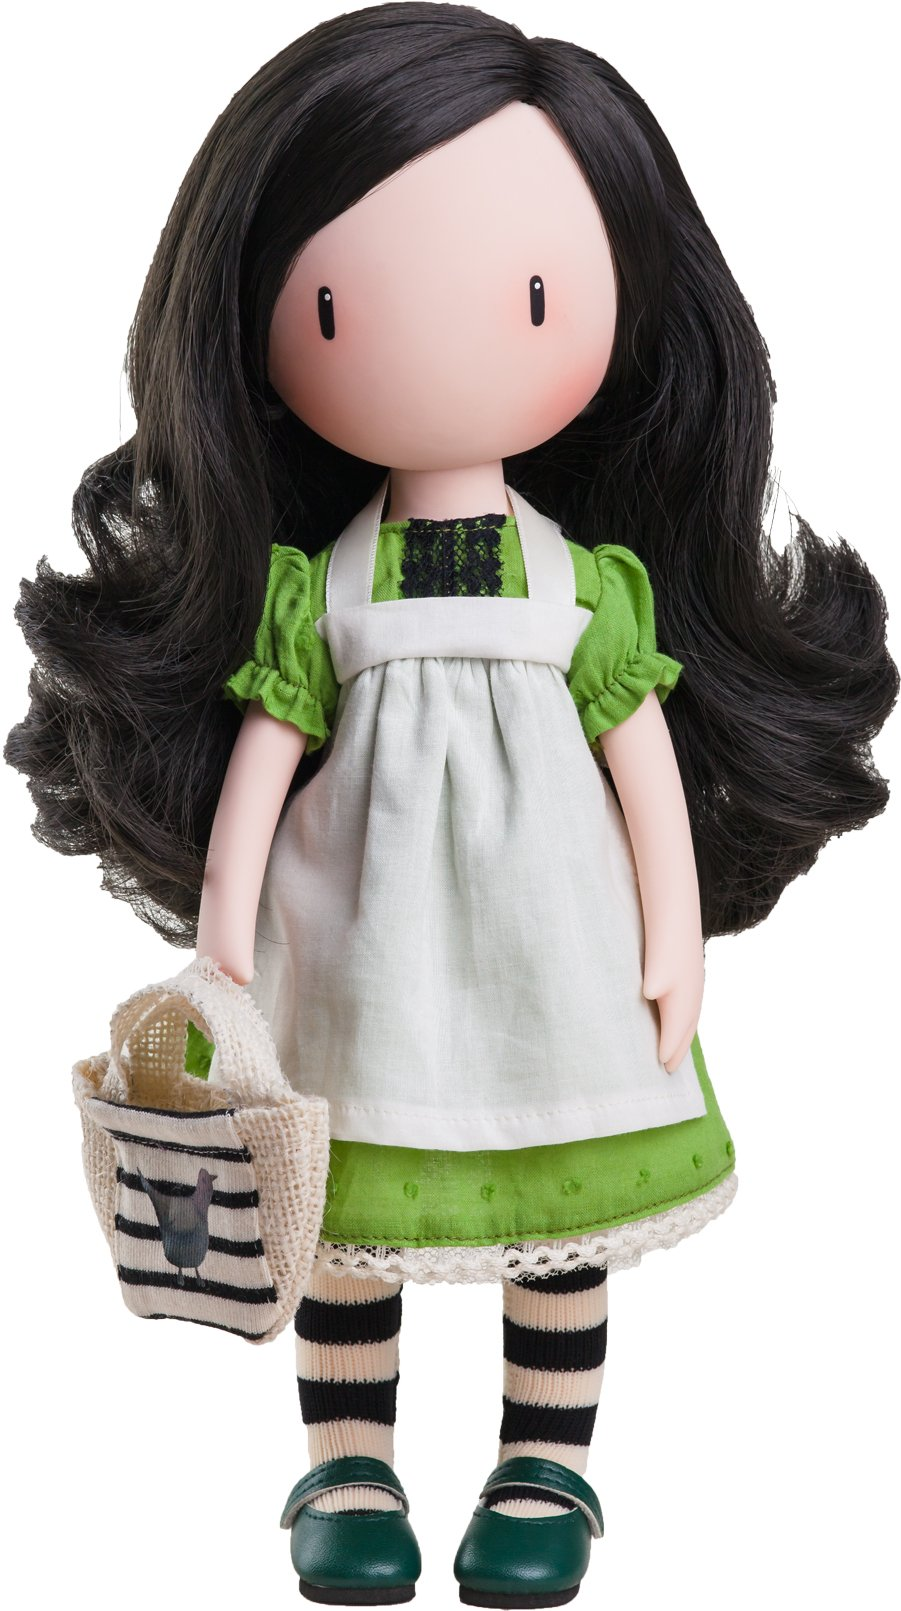 Paola Reina 04908 32 cm On Top of The World Doll, Multi-Color